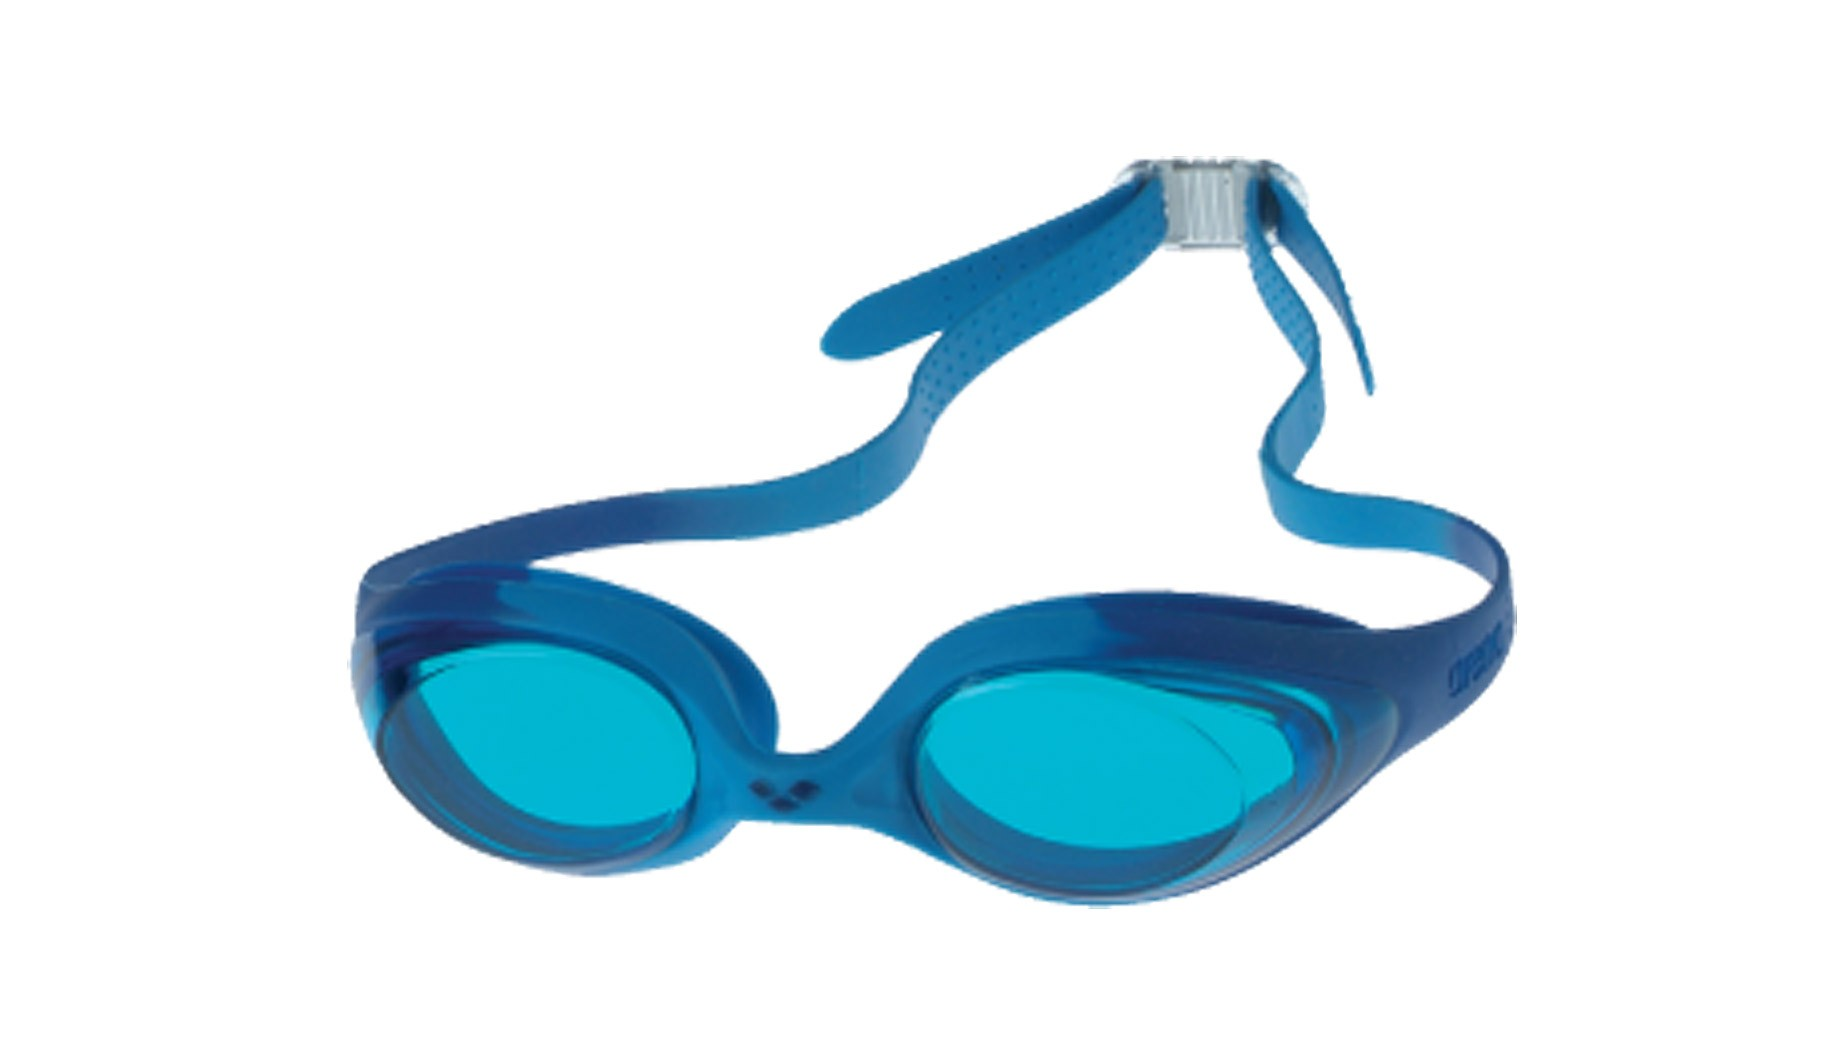 Swimsuit clipart swimming gear. Blue swim goggles